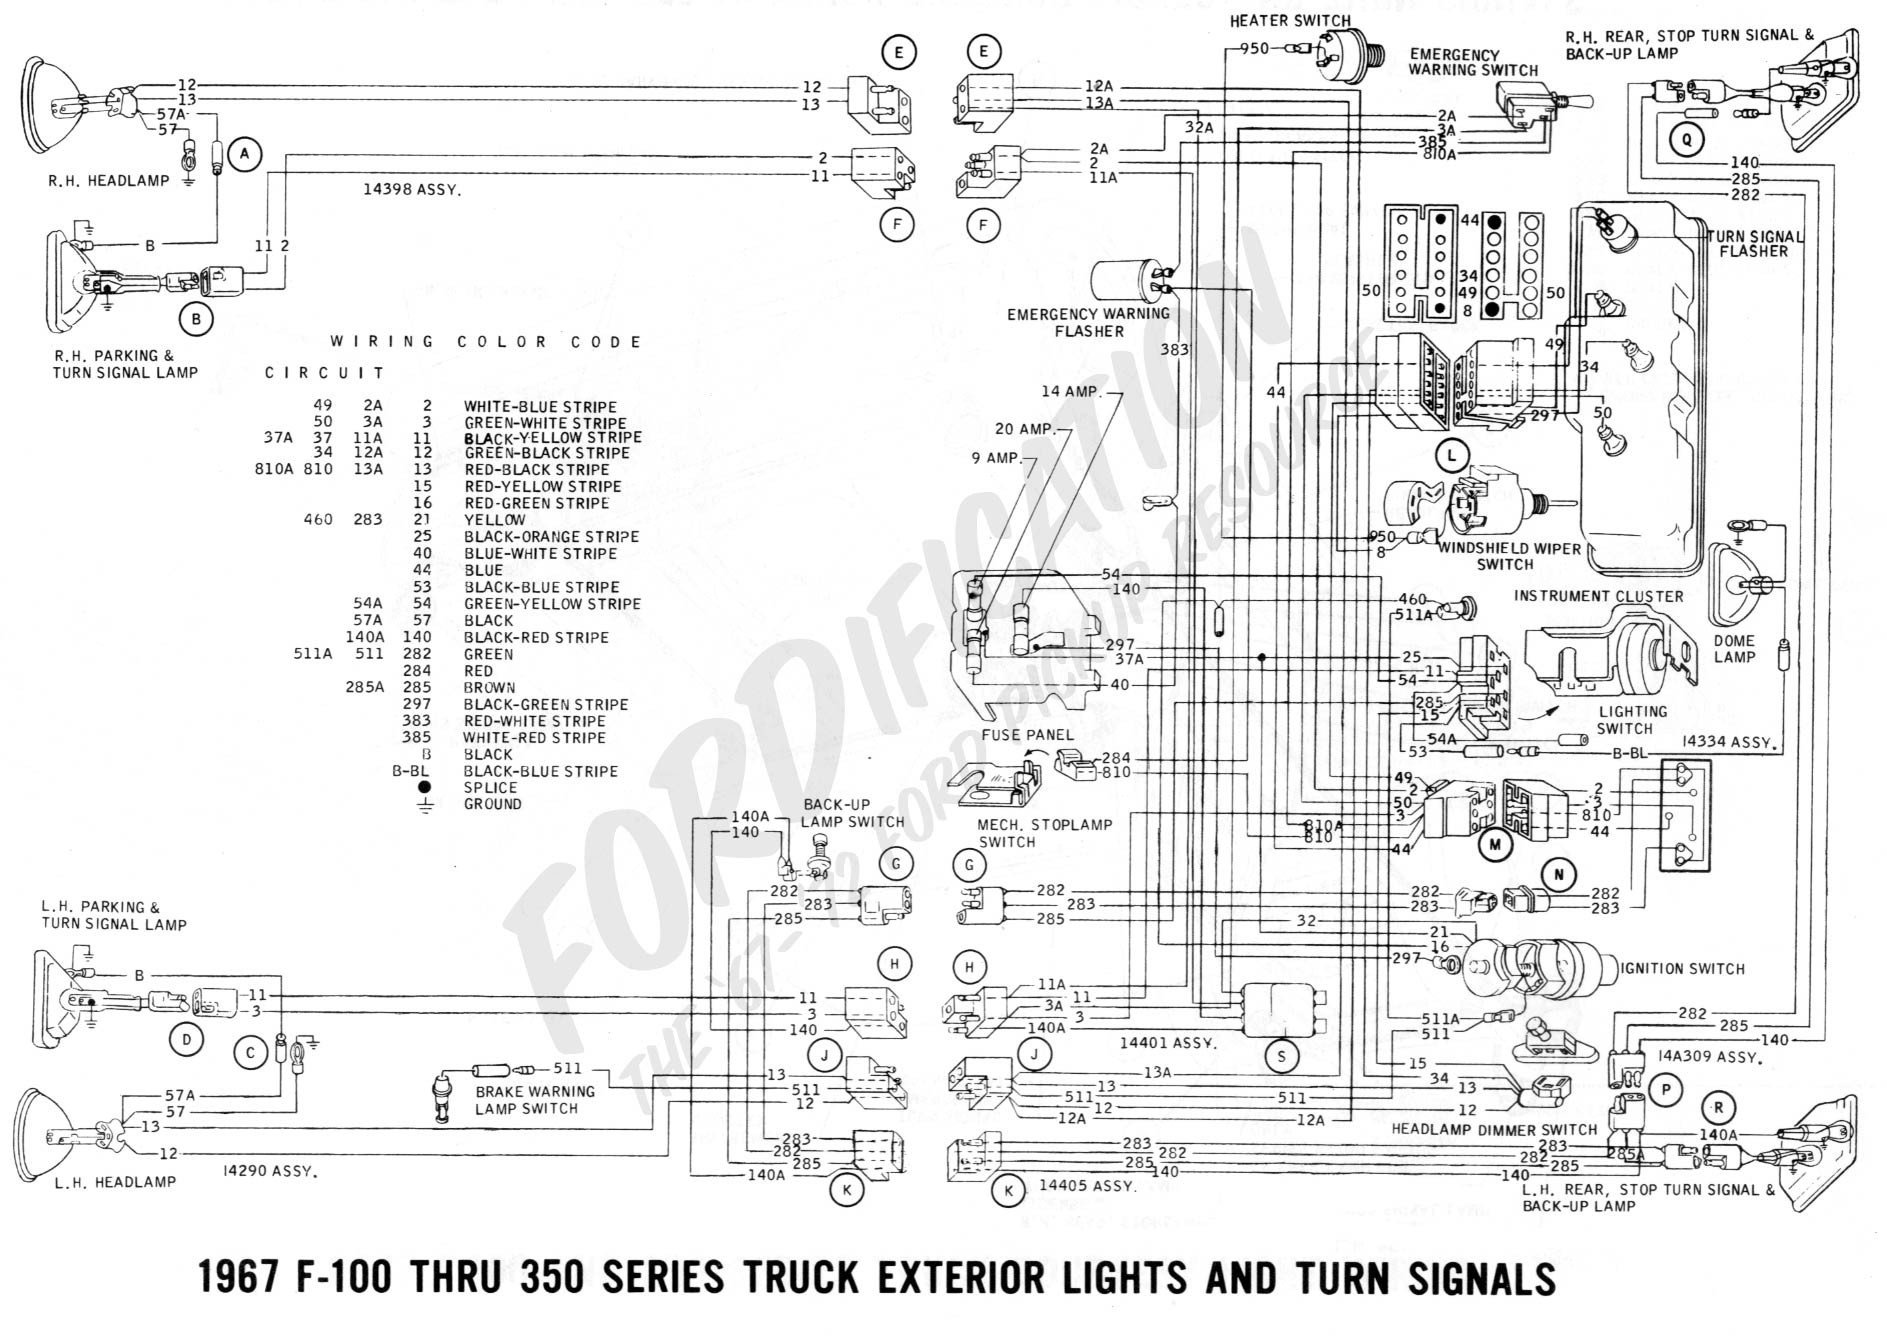 2001 Ford Ranger Engine Diagram Trusted Wiring Diagrams Mazda Miata 2004 3 0 Automotive Block U2022